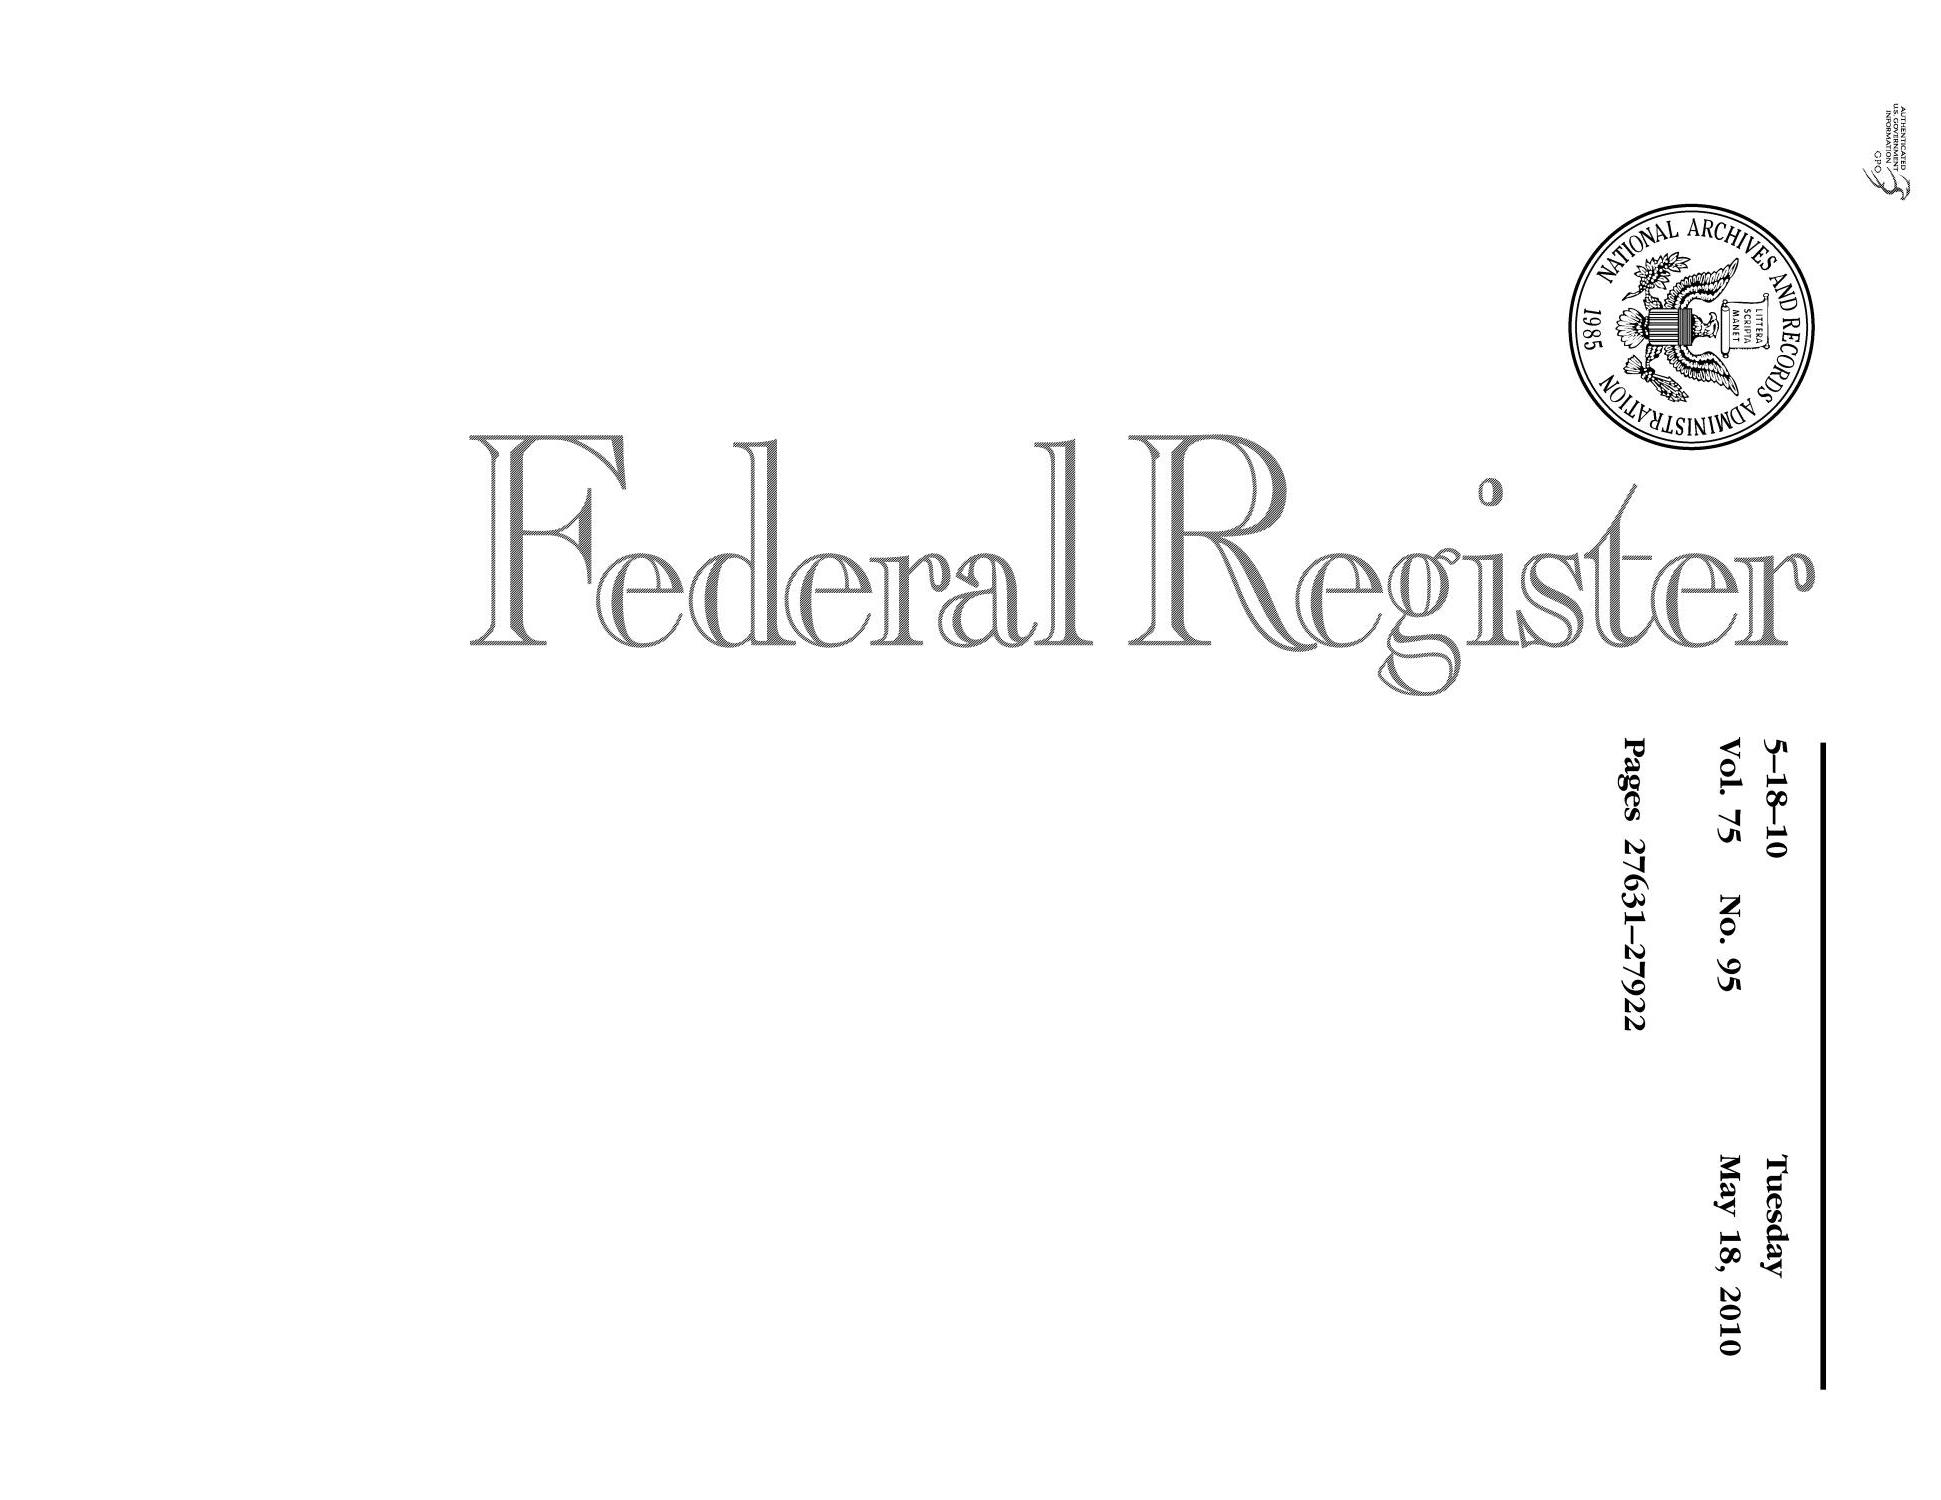 Federal Register, Volume 75, Number 95, May 18, 2010, Pages 27631-27922                                                                                                      Title Page